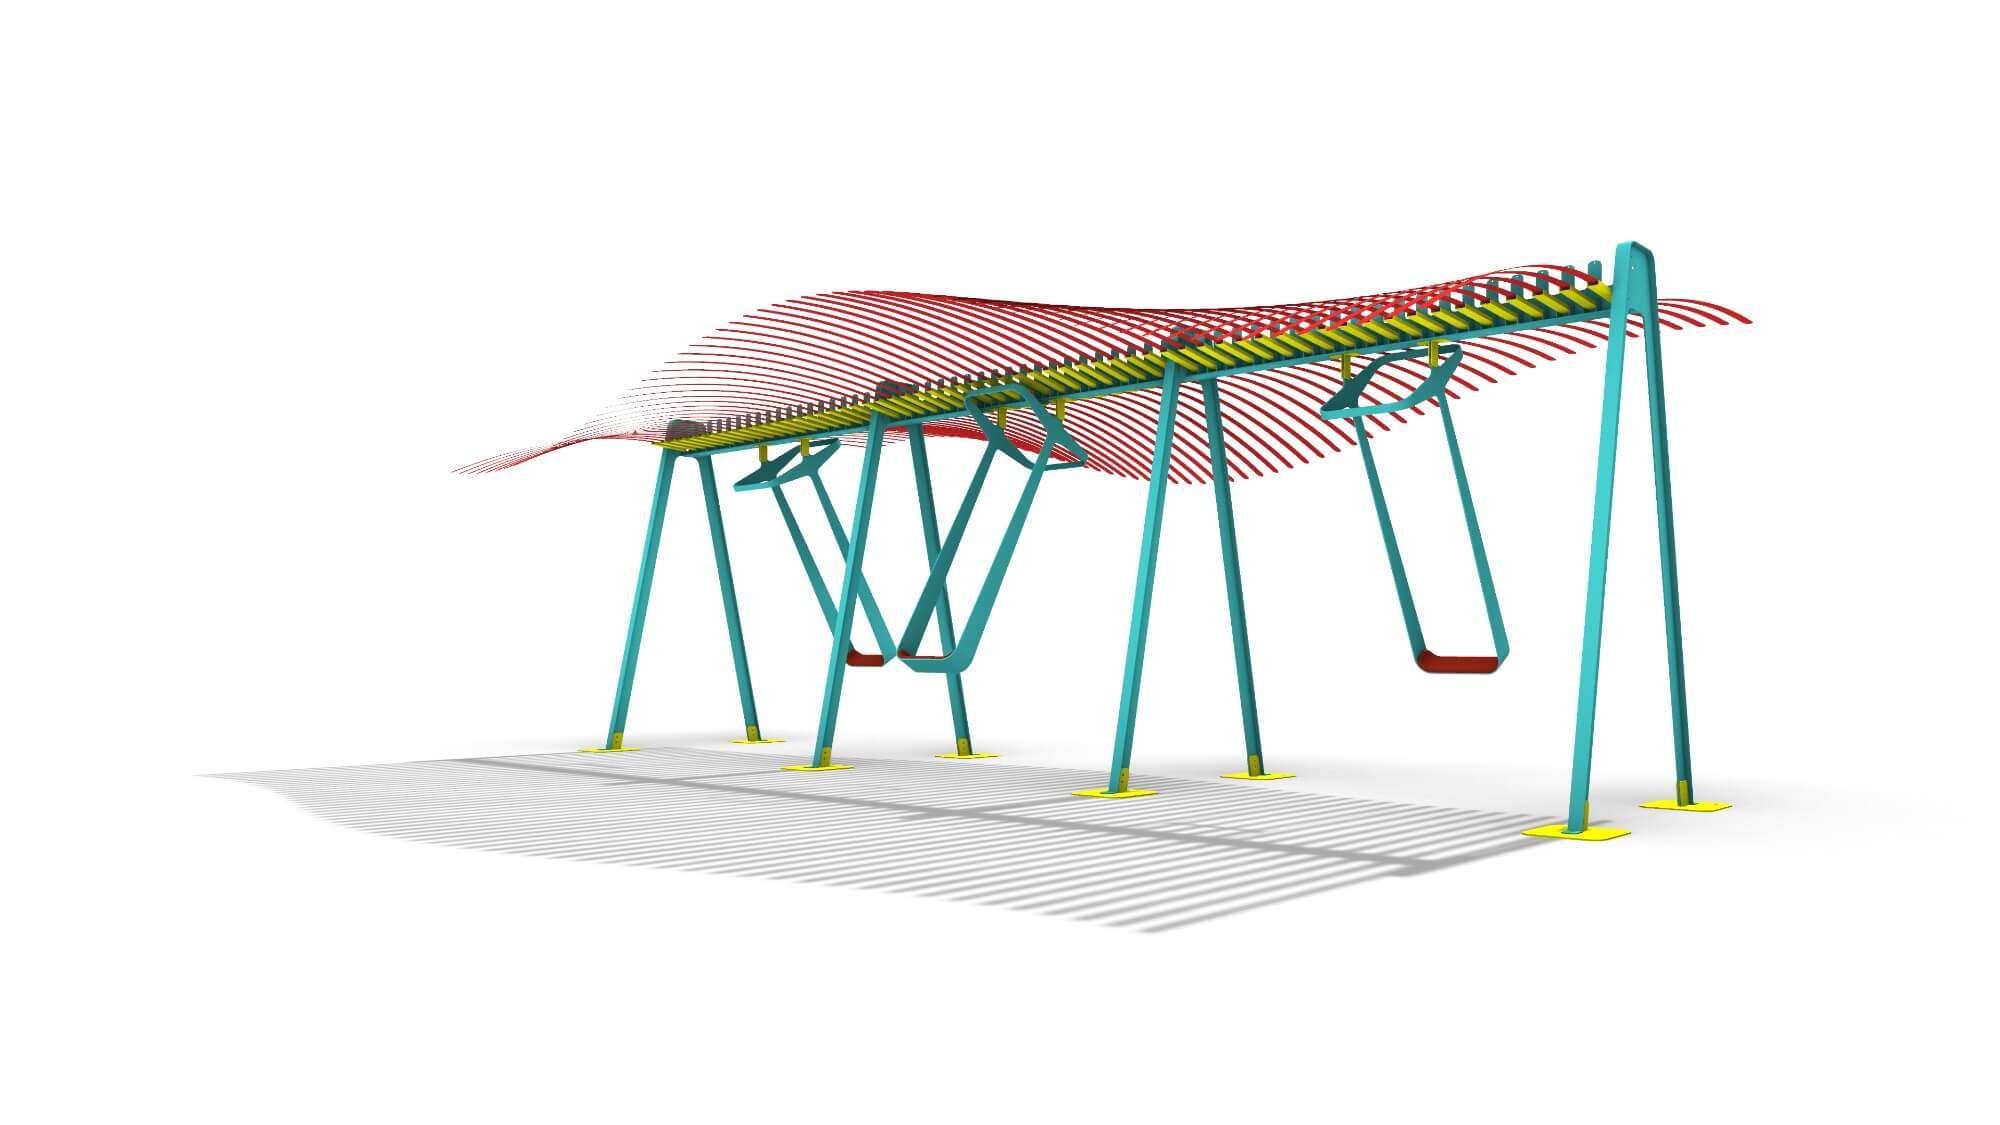 Rendering of swings, part of gt2P's Conscious Actions, 2020 Miami Design District commission